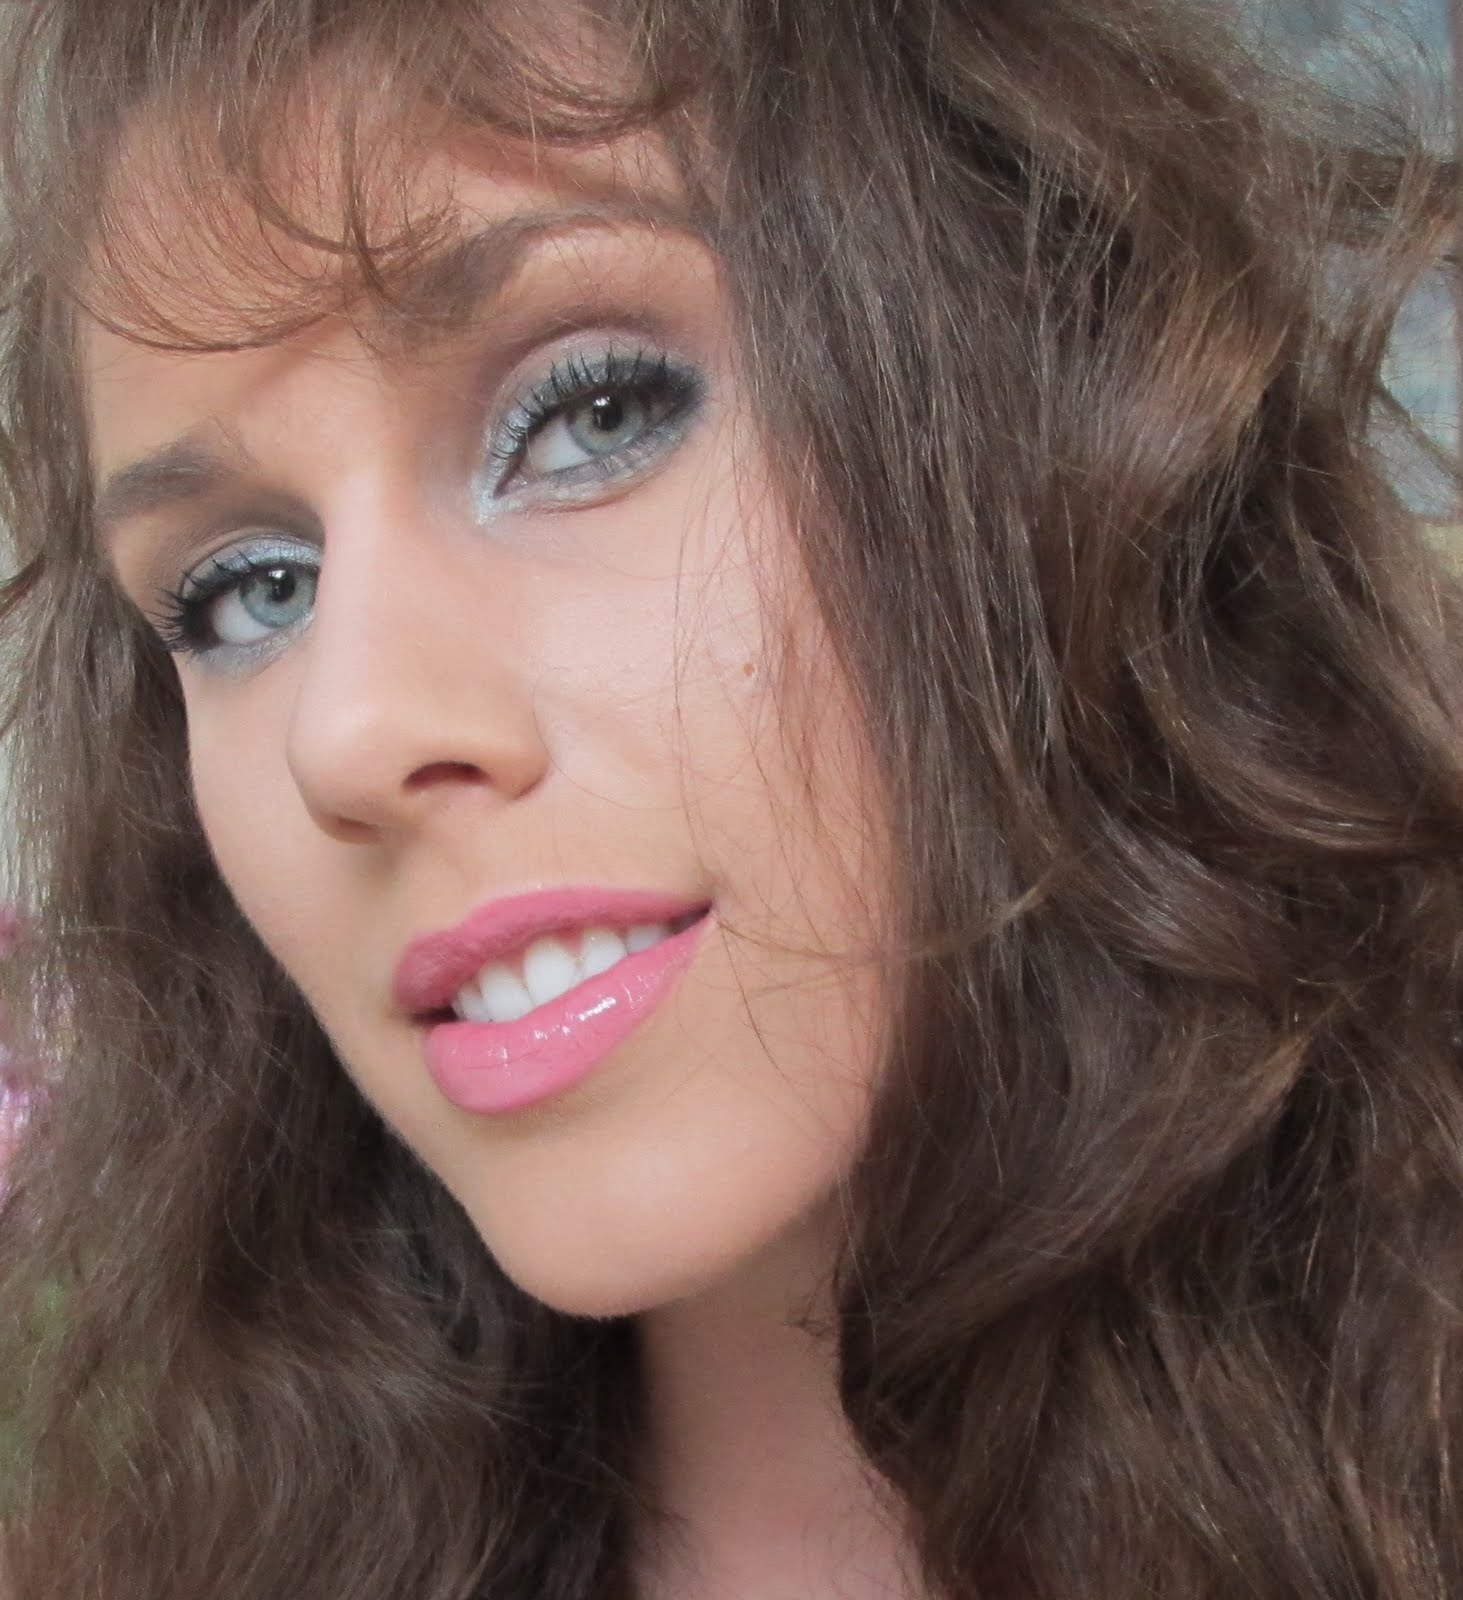 http://1.bp.blogspot.com/-aqkIJ8wJhvE/TosudtIdbeI/AAAAAAAAAik/UecmlBLQ38U/s1600/leona-lewis-official-music-video-collide-avicci-photo-picture-makeup-tutorial-look-how-to-cosmetics-make-up-leona-lewis-345-diamondsandheels14.jpg